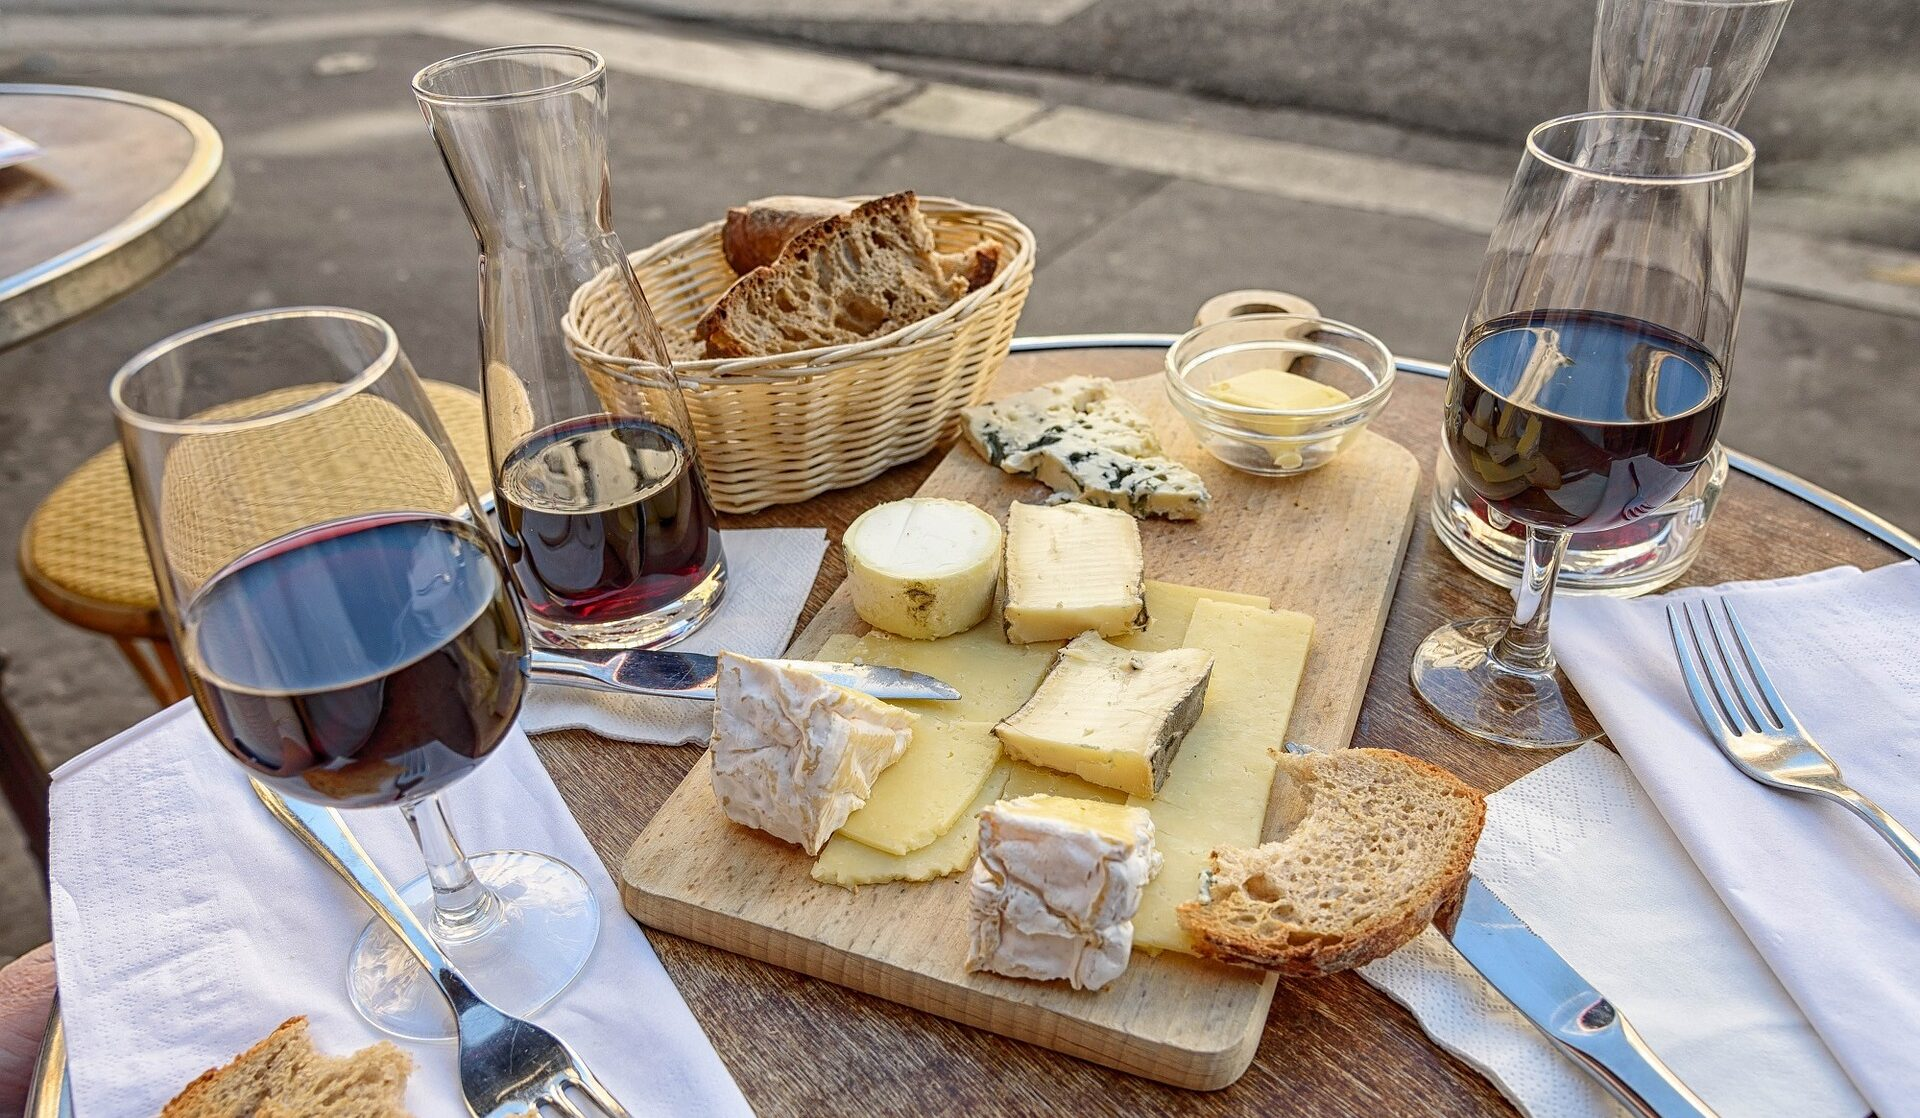 Although the french consume more saturated fat and alcohol than other people, they have less hearth disease